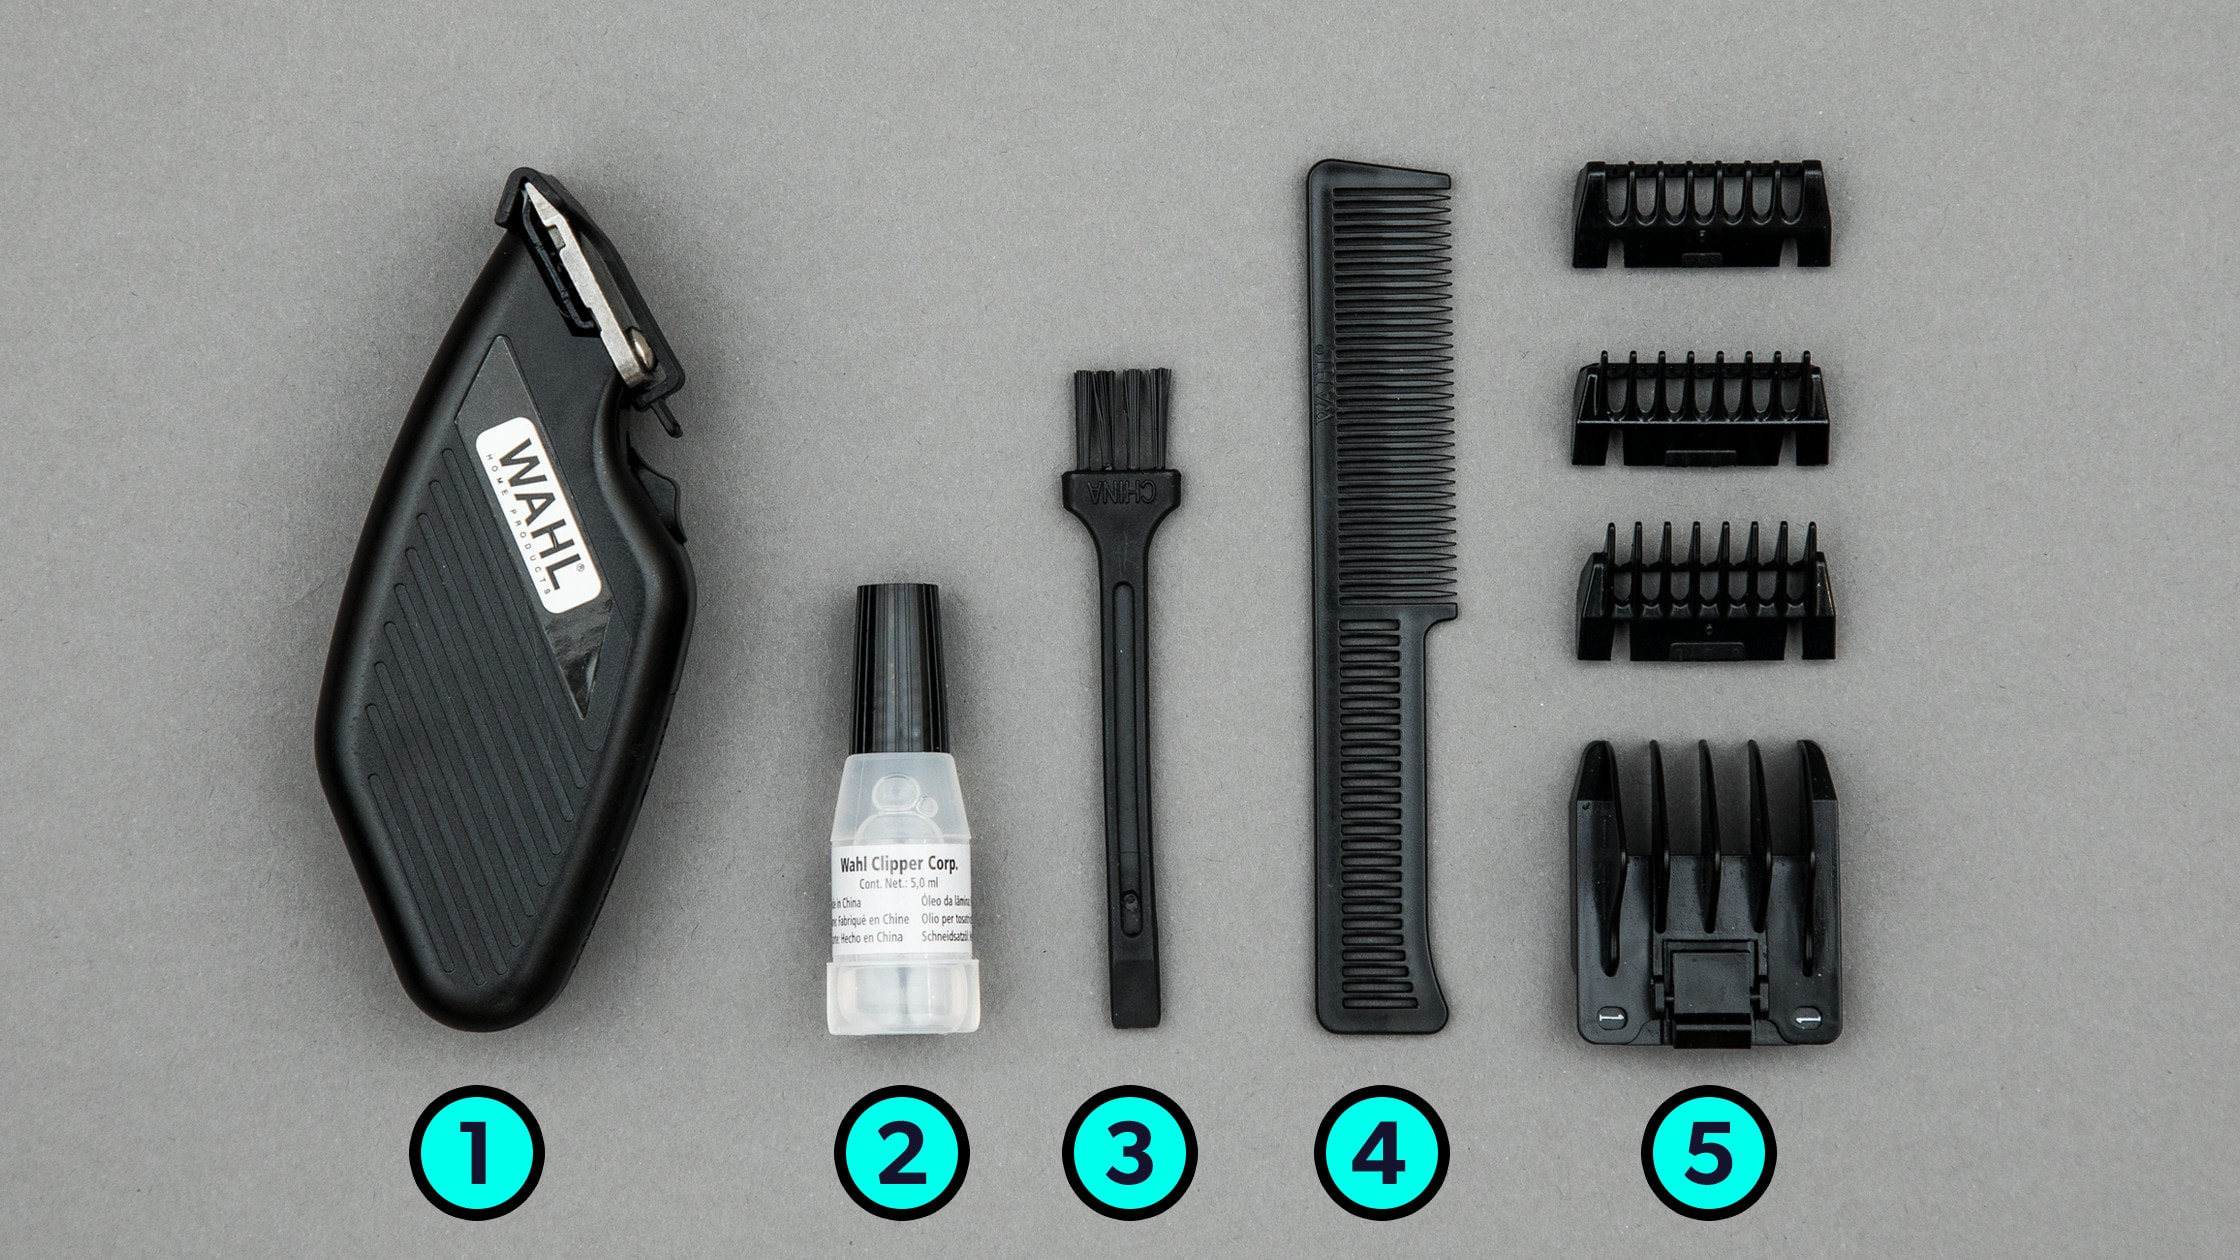 Everything that comes in the box of the WAHL Travel Trimmer